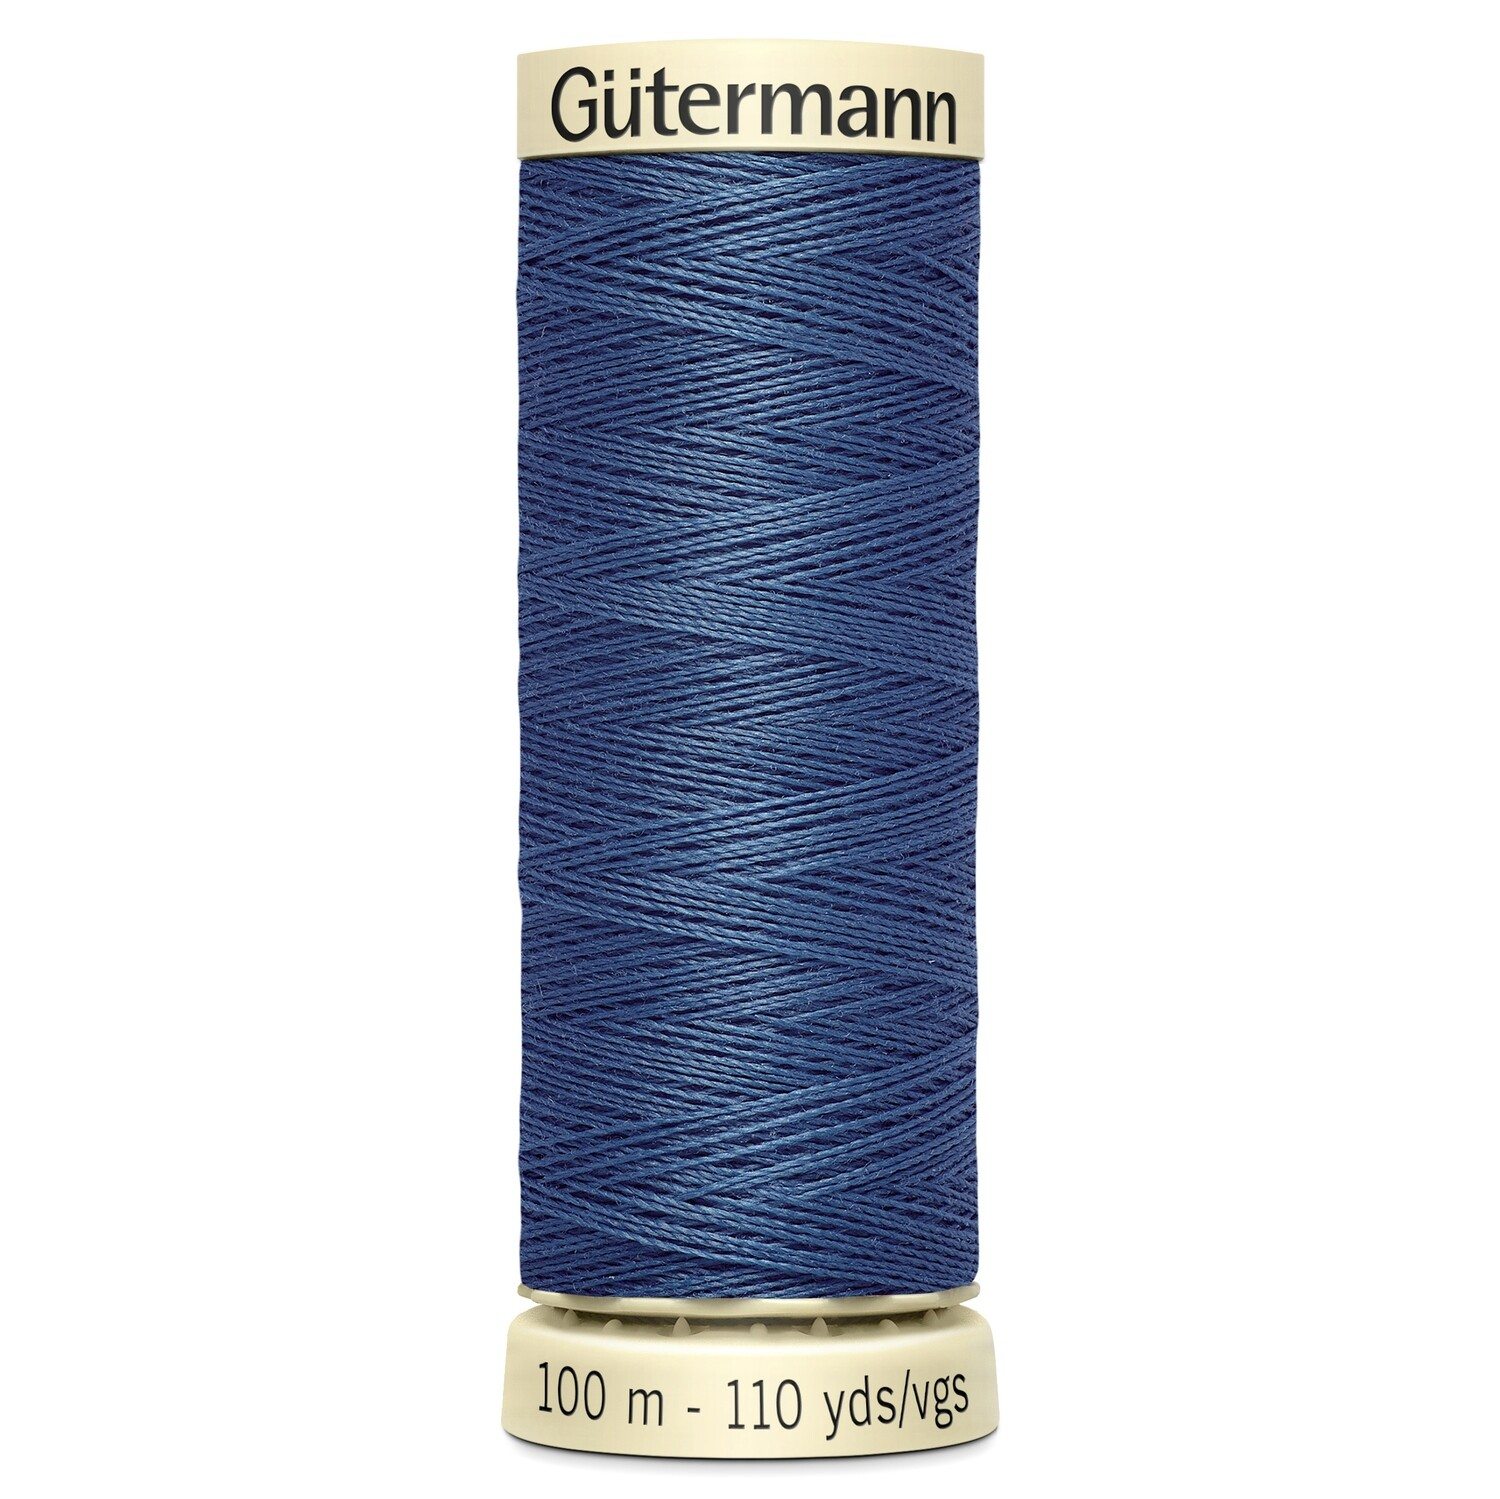 Gutermann Sew-All thread 435